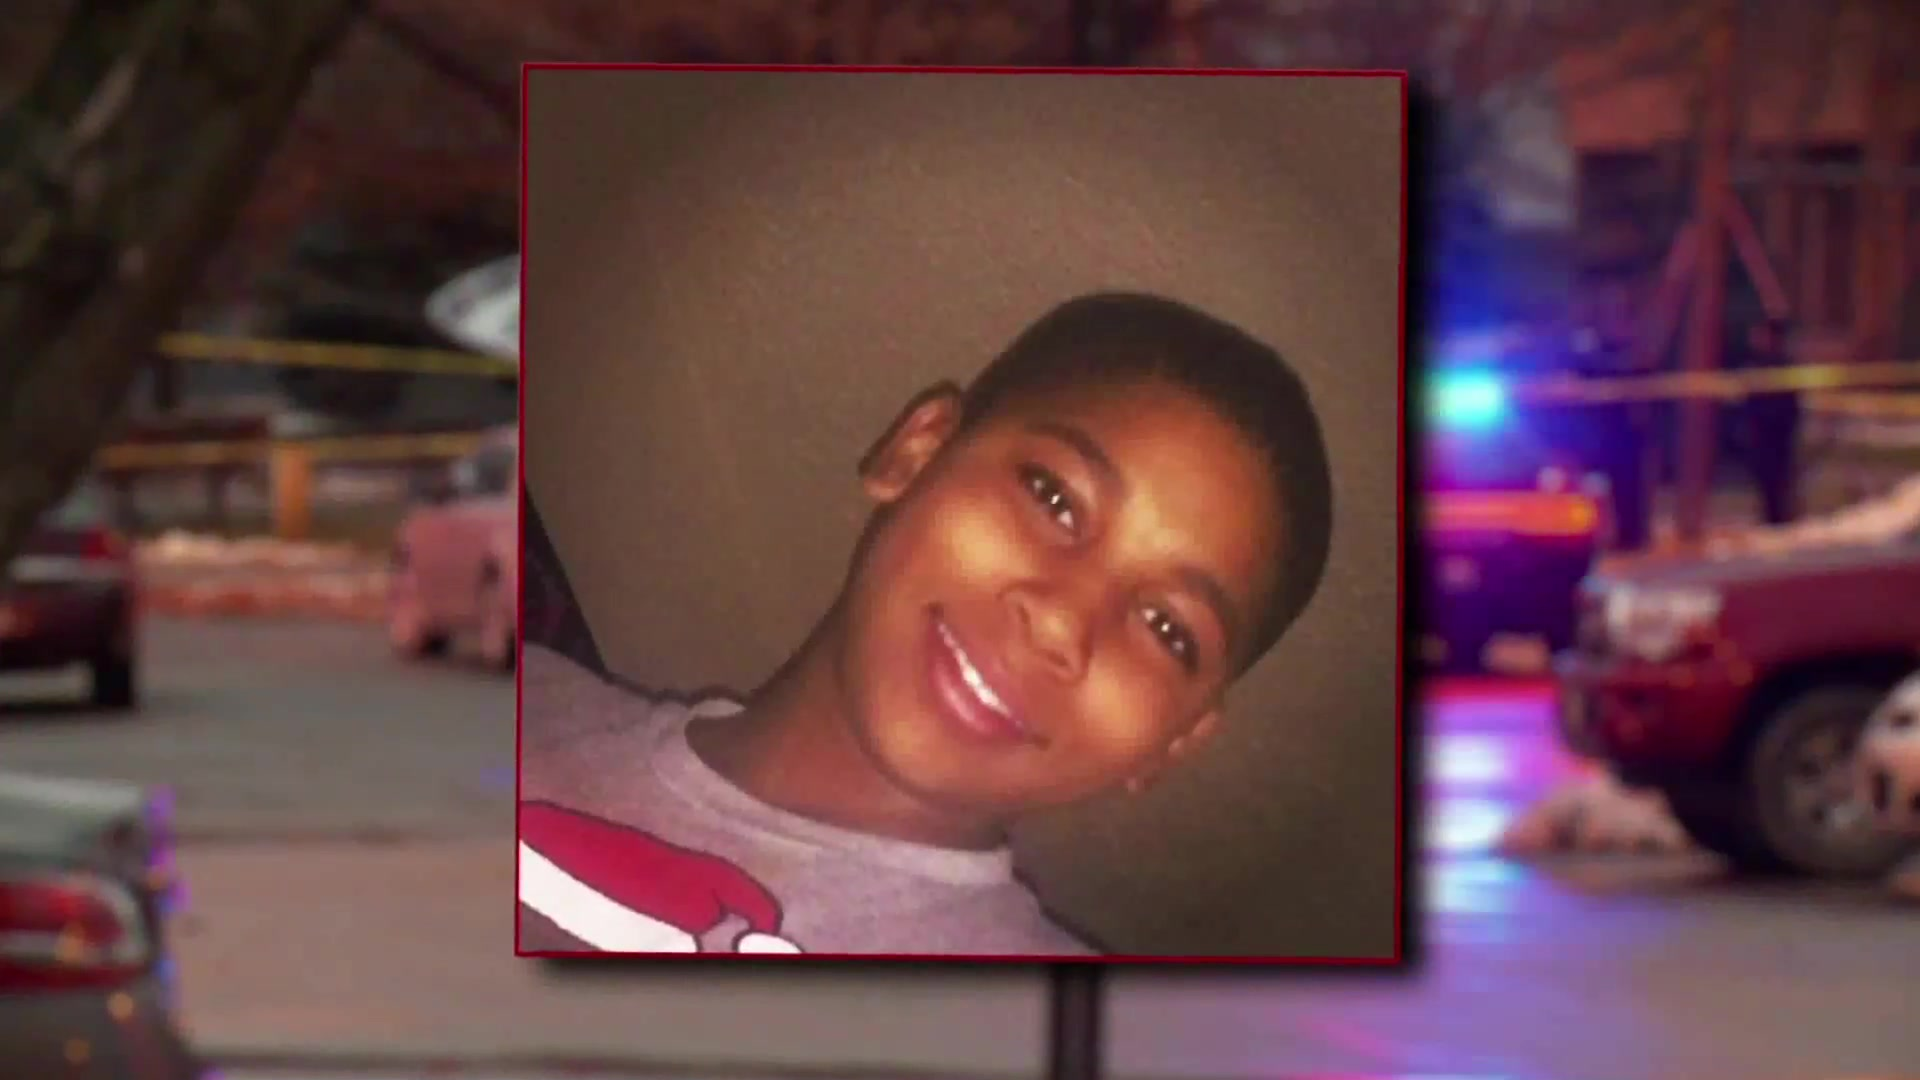 Report: EMS Supervisor Investigated Over Alleged Comments About Tamir Rice